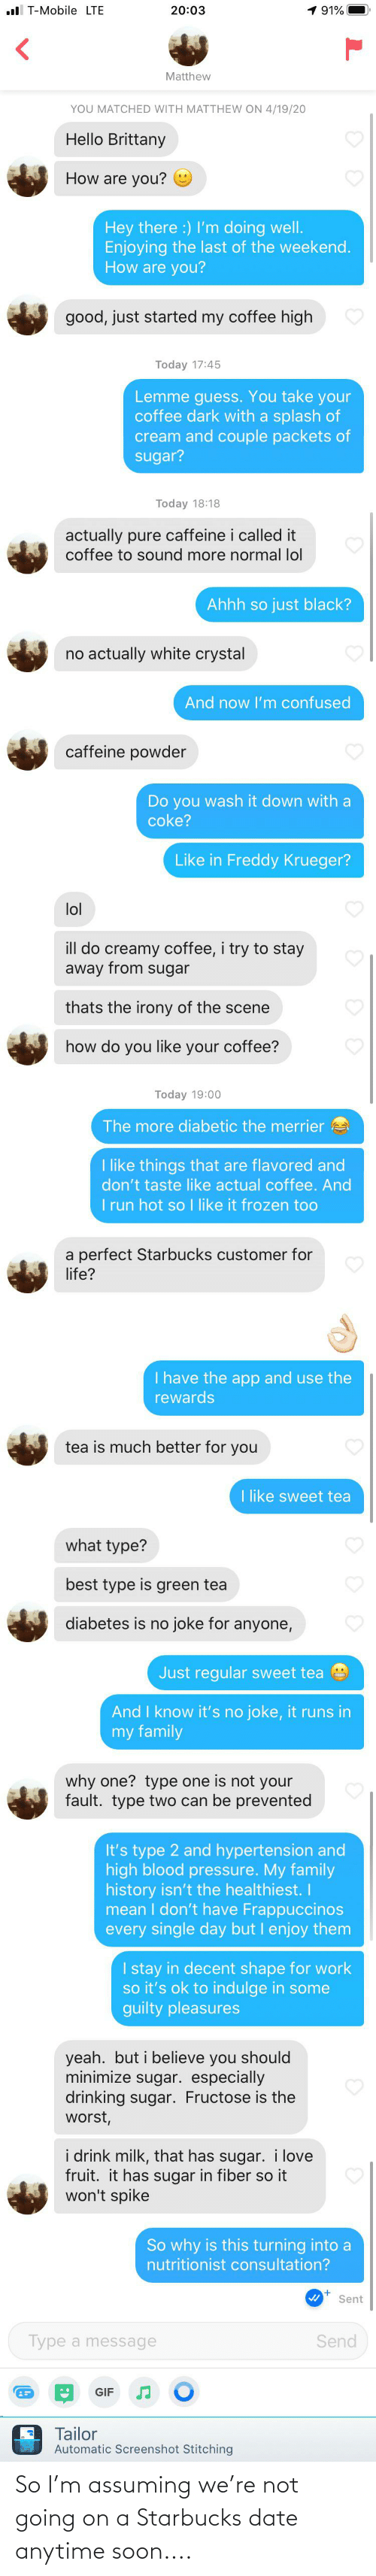 anytime: So I'm assuming we're not going on a Starbucks date anytime soon....